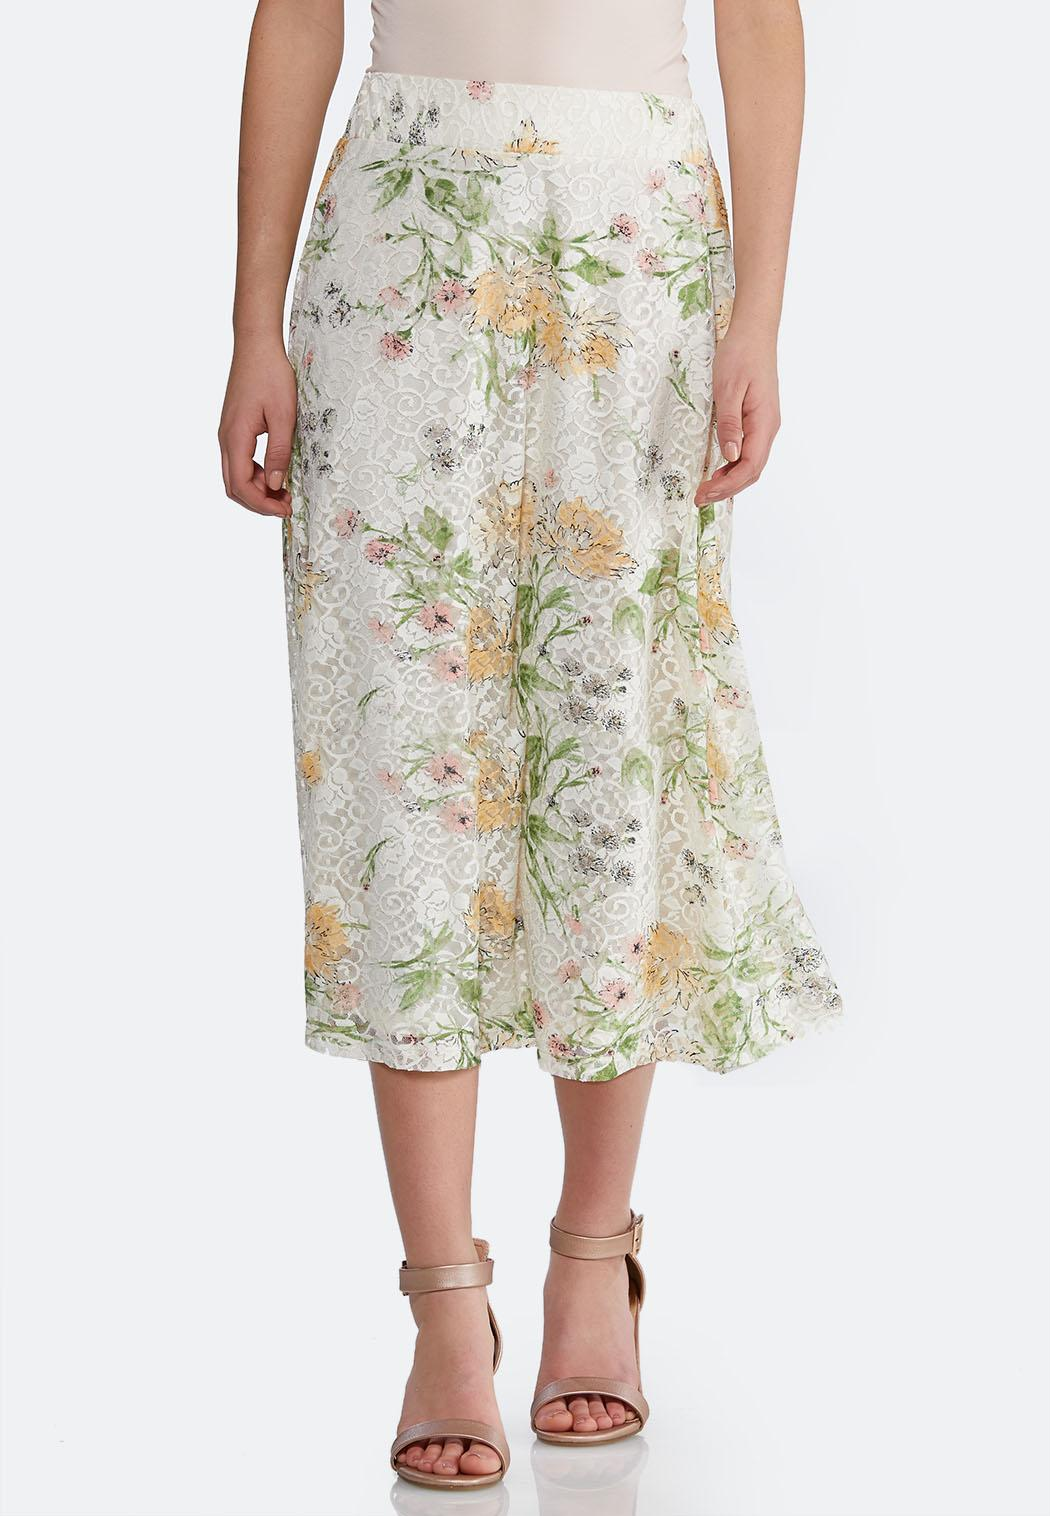 Plus Size Floral Lace Skirt